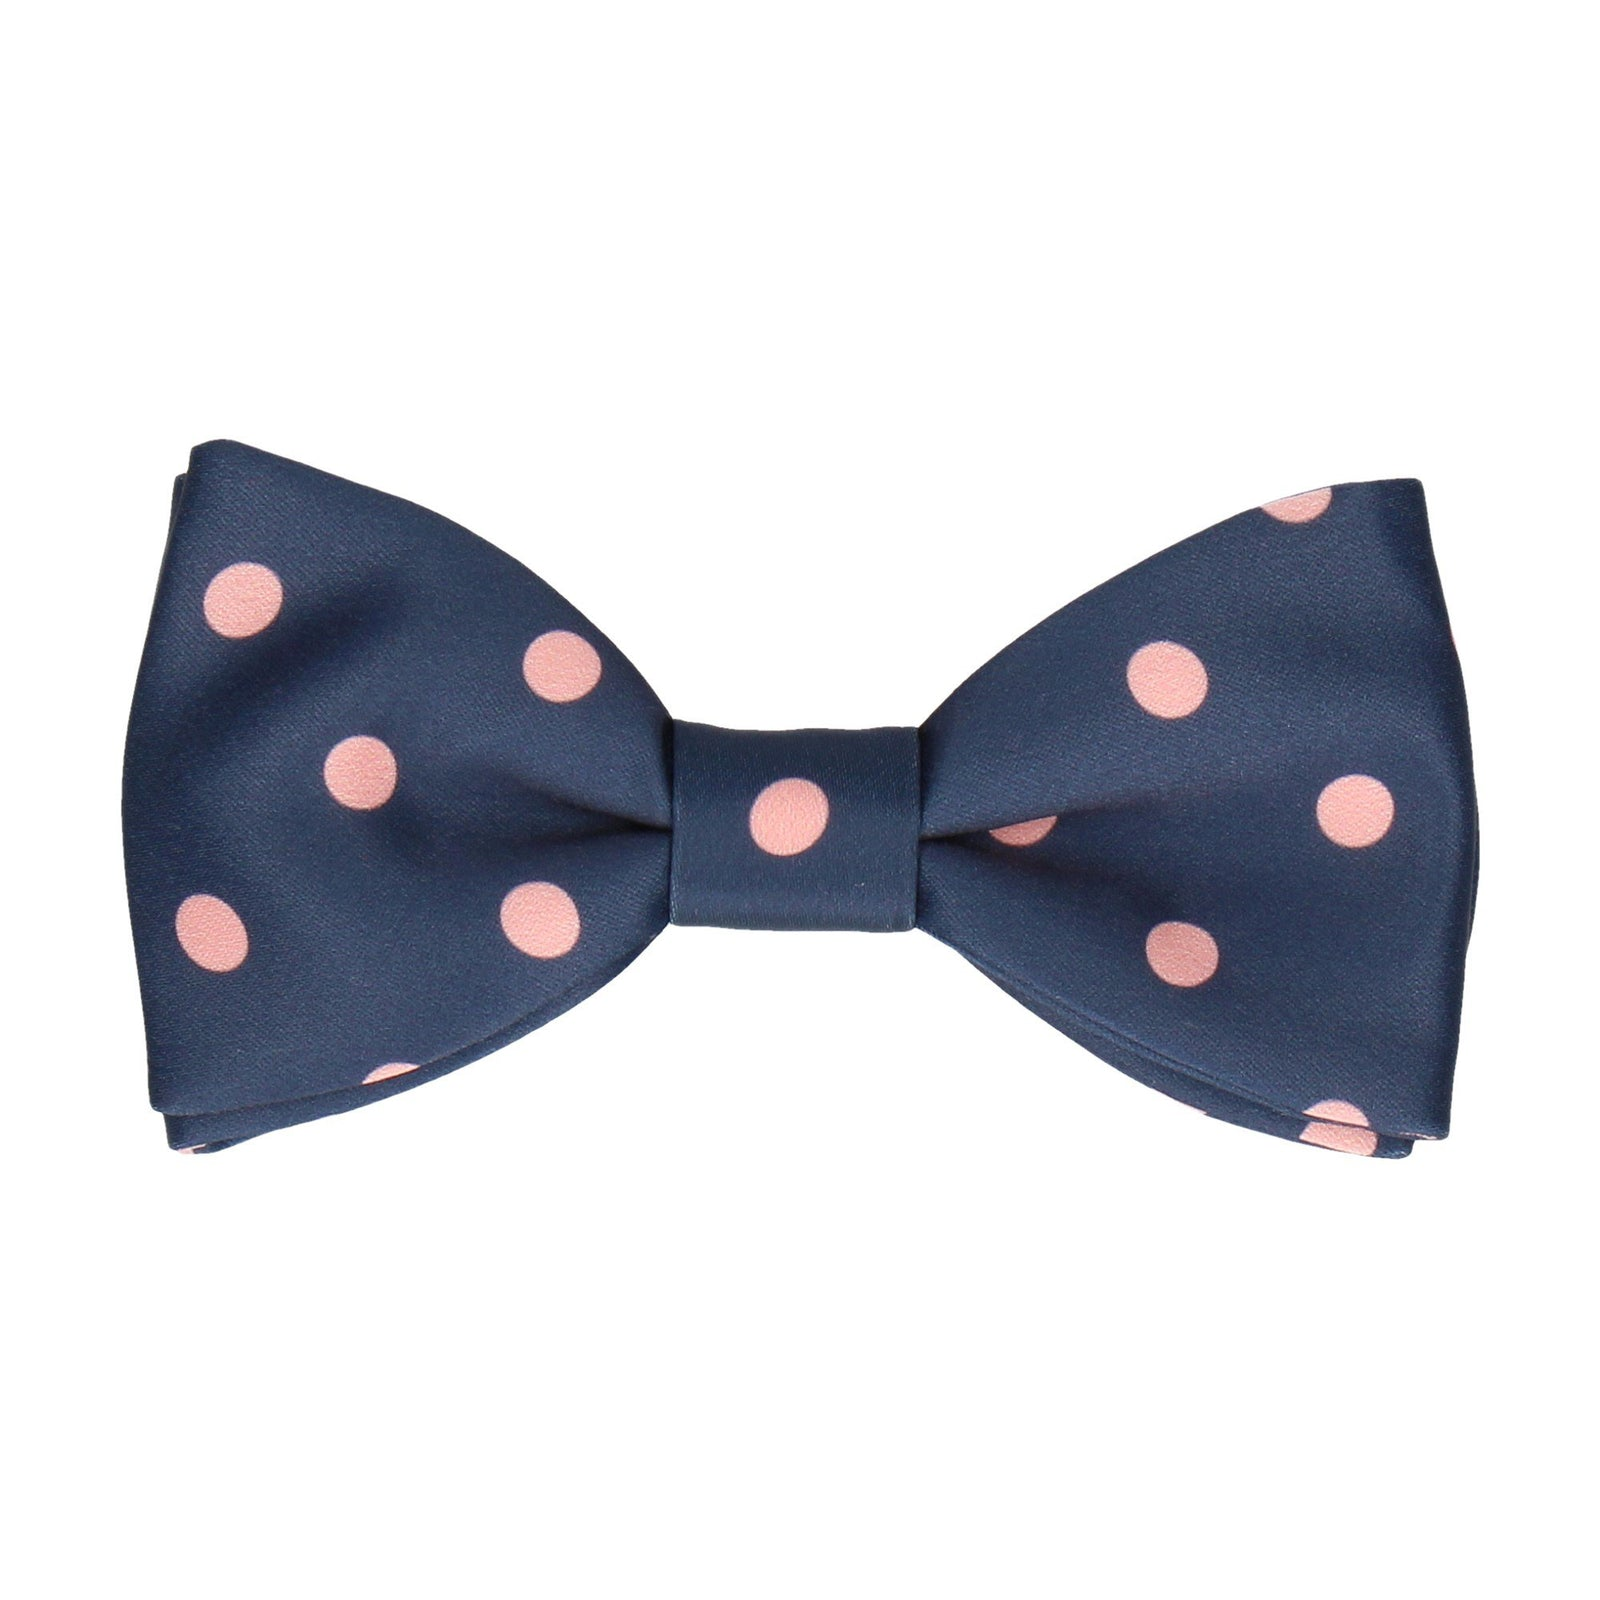 Silksworth Navy Blue with Coral Bow Tie